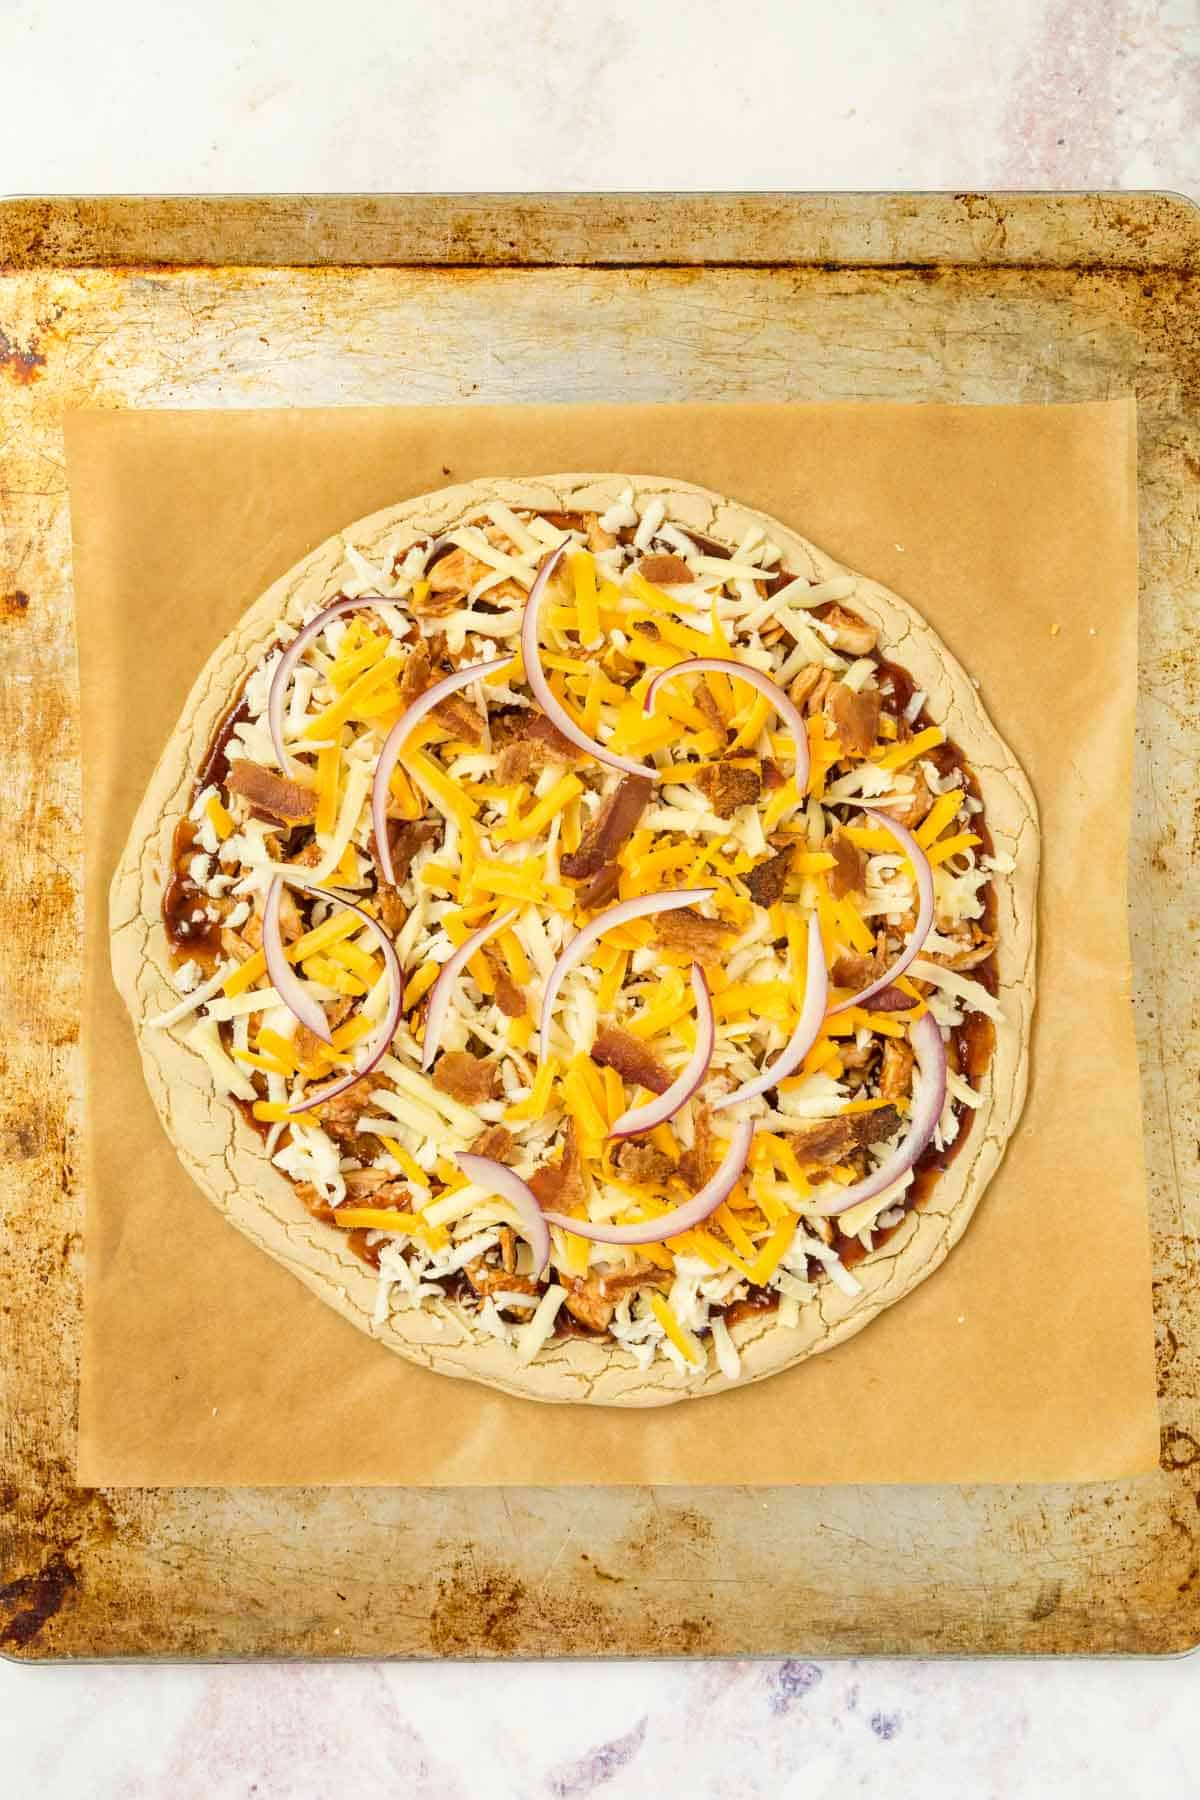 unbaked barbecue chicken pizza on a parchment lined baking sheet